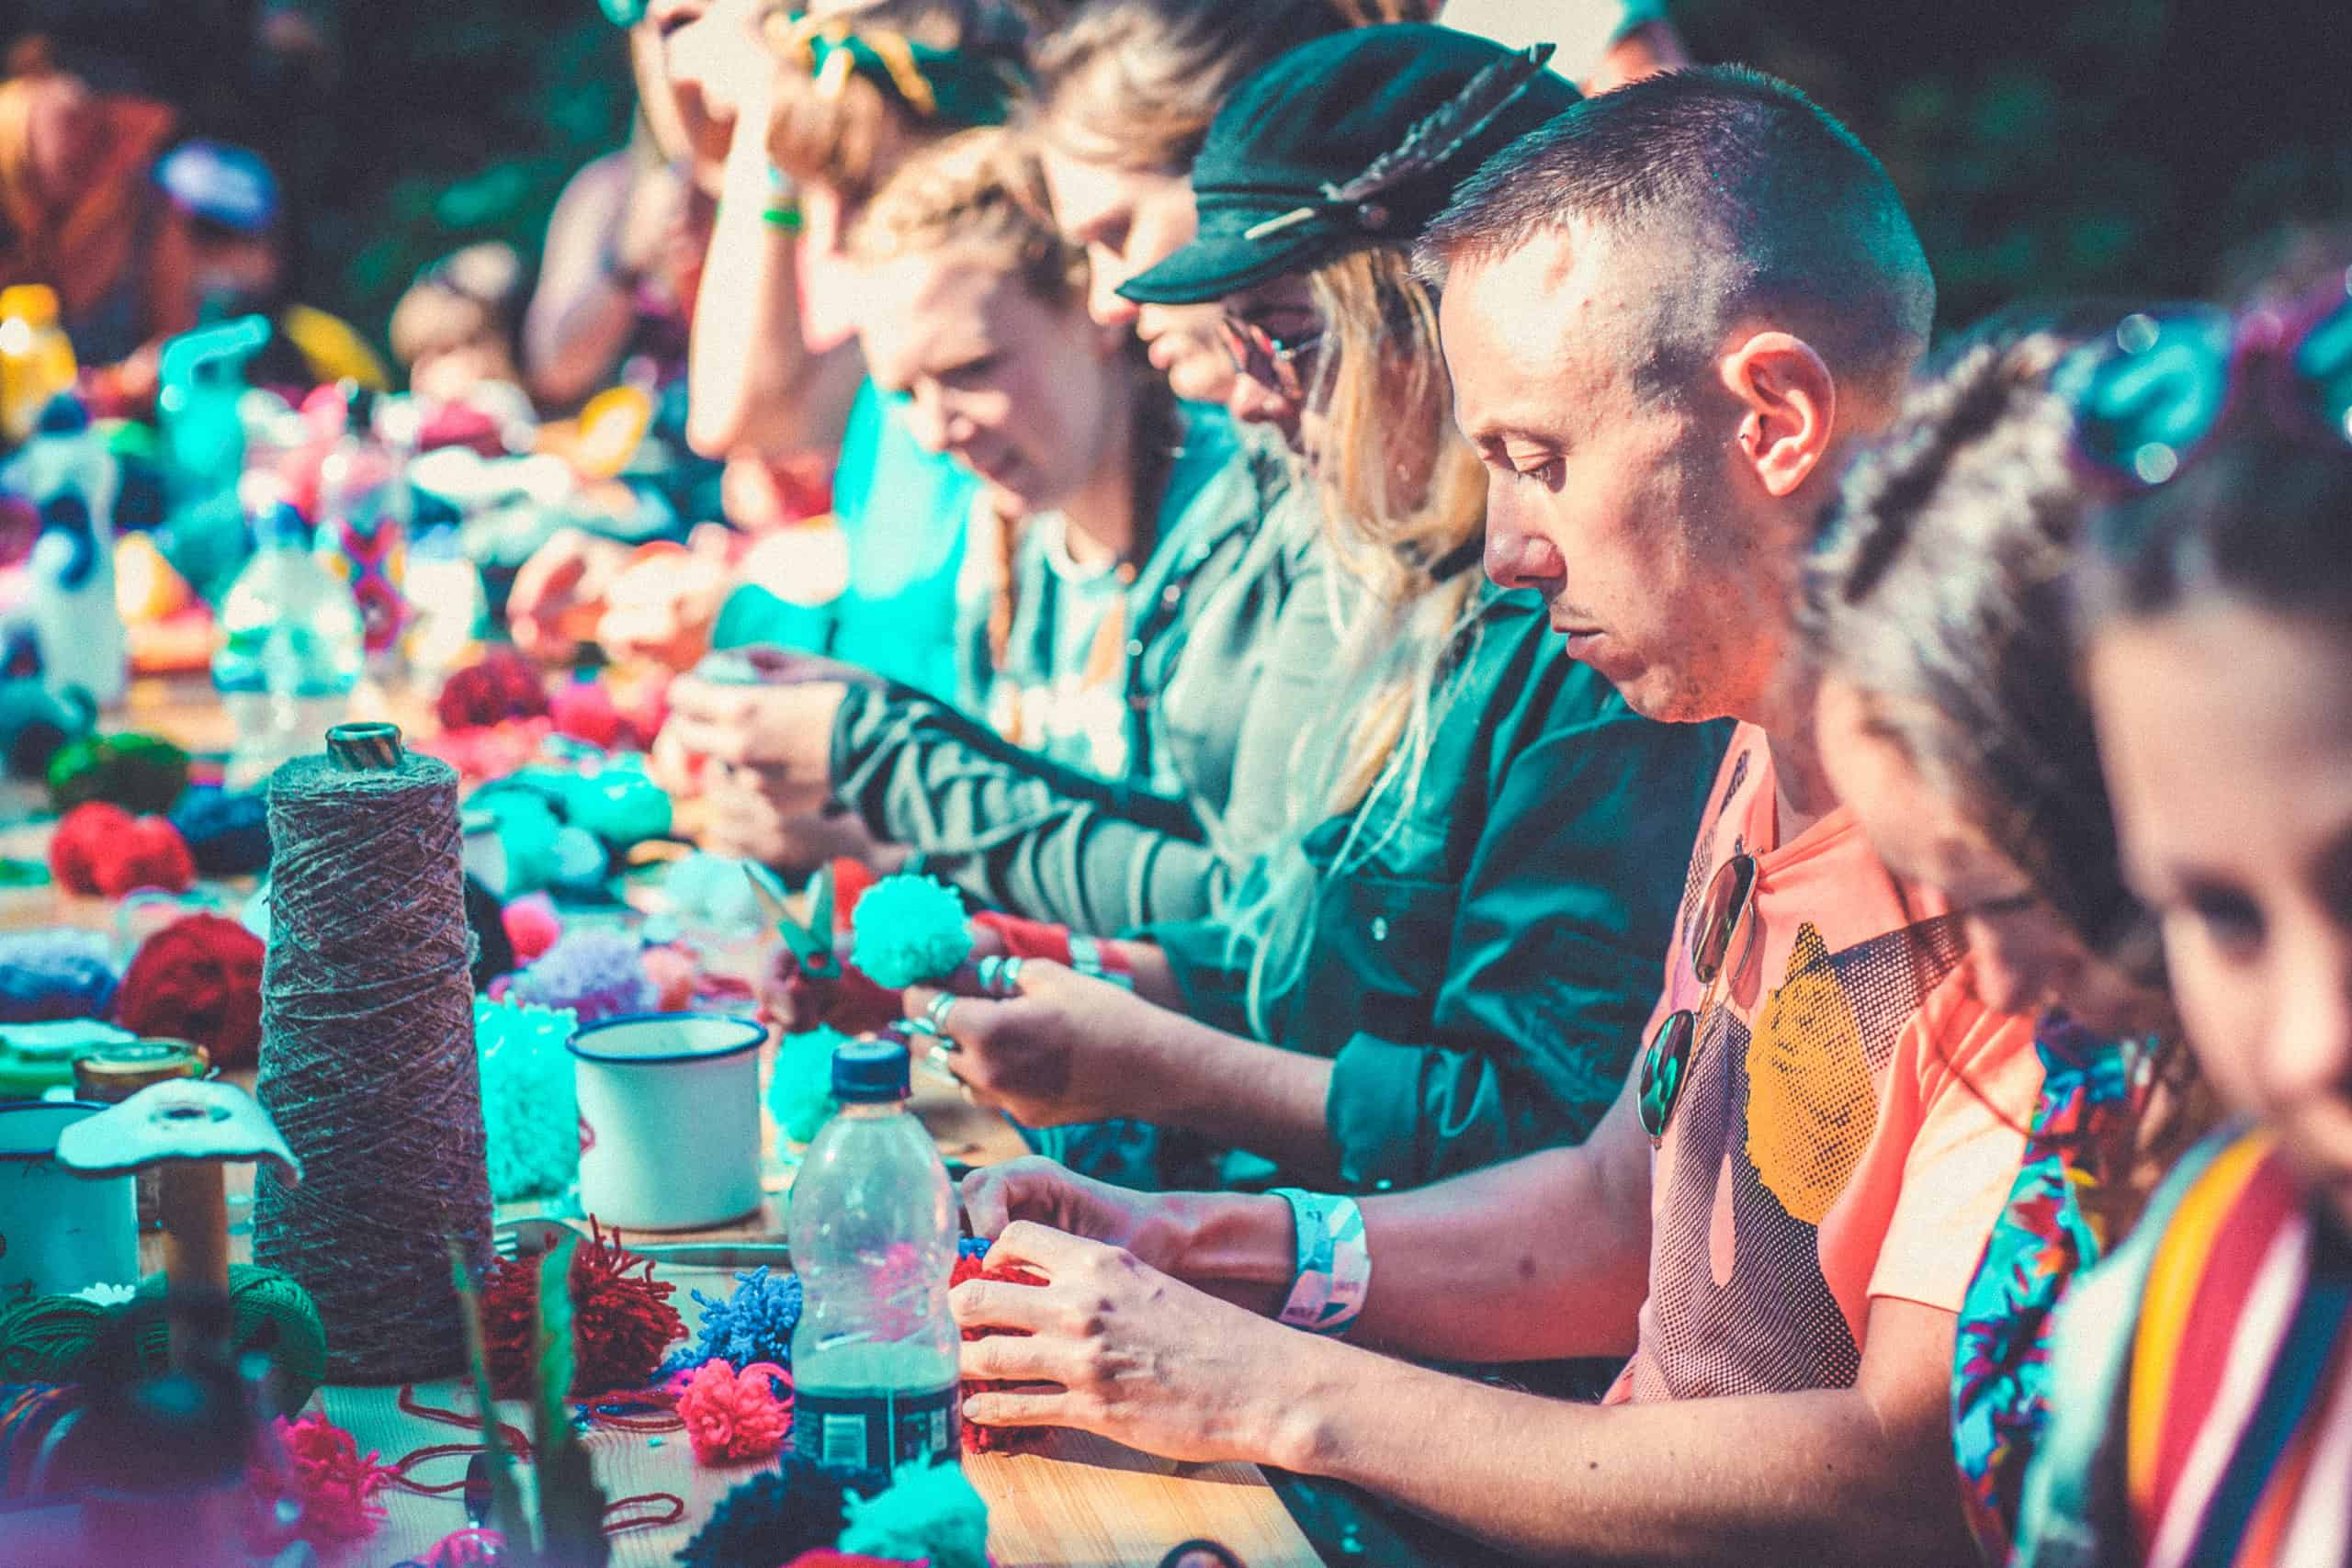 Pom pom making at Camp Wildfire. A summer weekend break in a forest near London and Kent. An outdoor woodland retreat featuring adventure activities, live music, DJs, parties and camping. Half summer adventure activity camp, half music festival, for adults only.